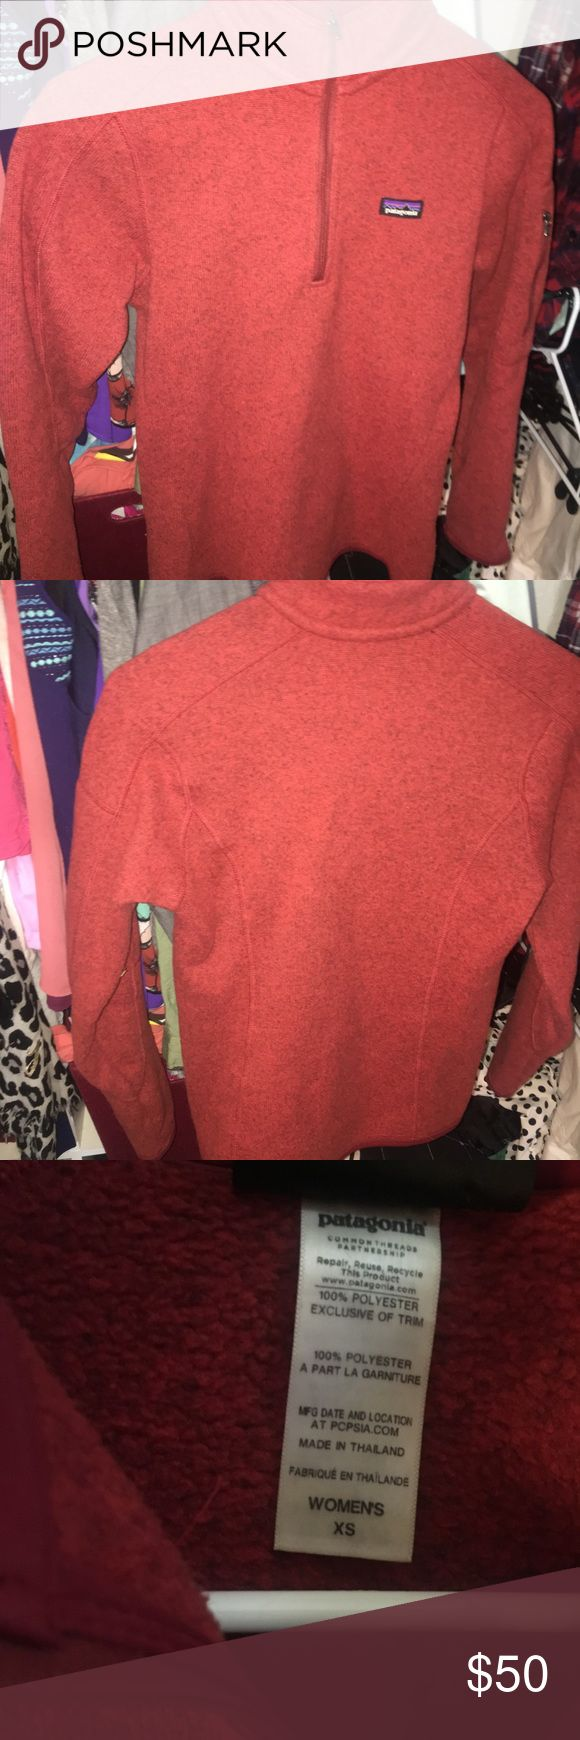 Patagonia Red Women's Better Sweater 1/4 Zip This is in perfect condition! Only worn around 5 times. Only selling because it's too small! This retails for $99.99. Patagonia Tops Sweatshirts & Hoodies